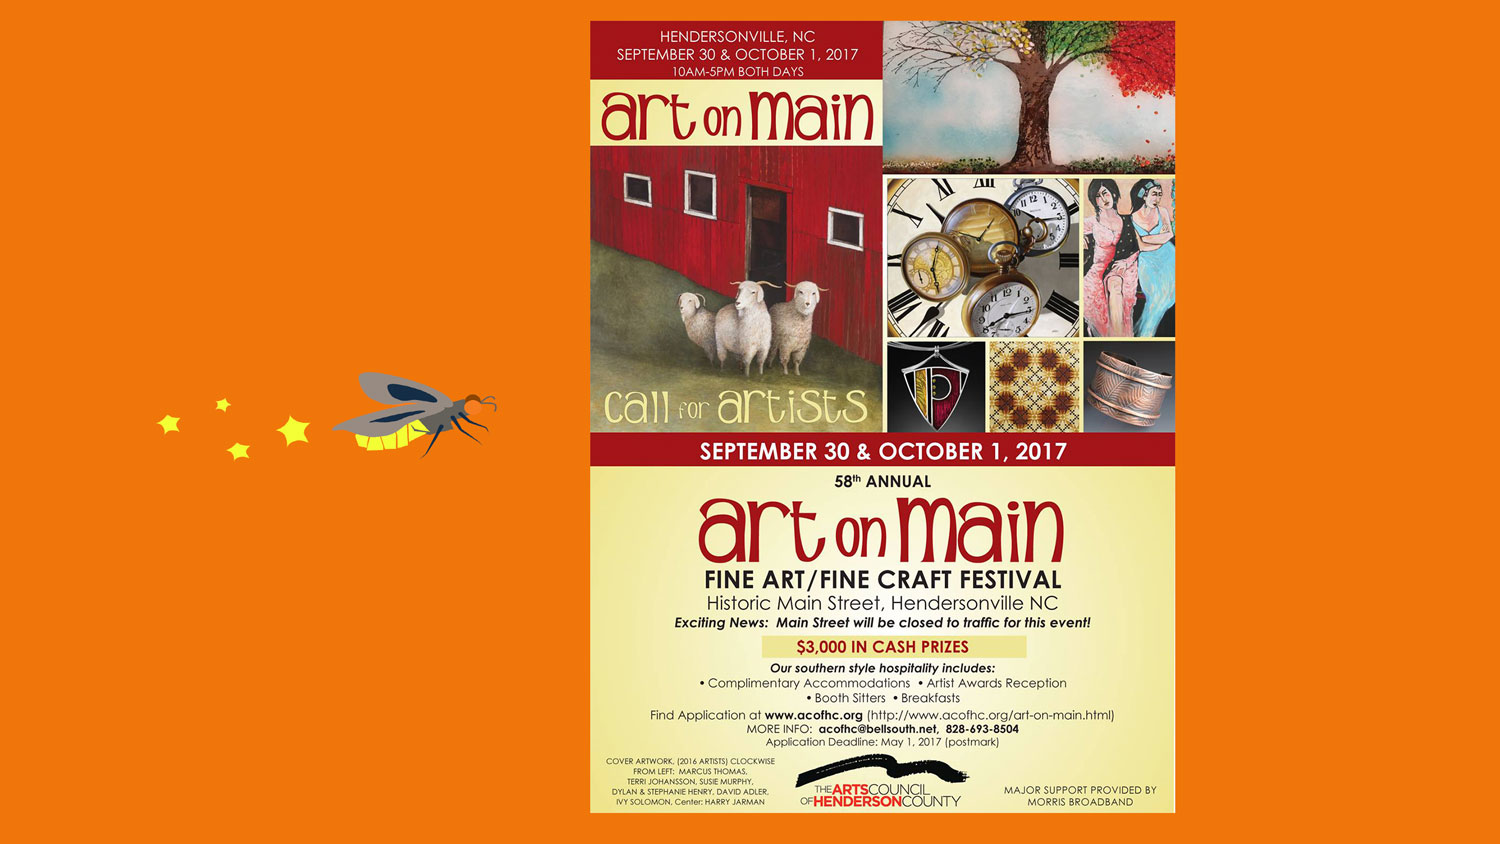 Art on Main. Hendersonville, NC. Sep 30 to Oct 1, 2017.